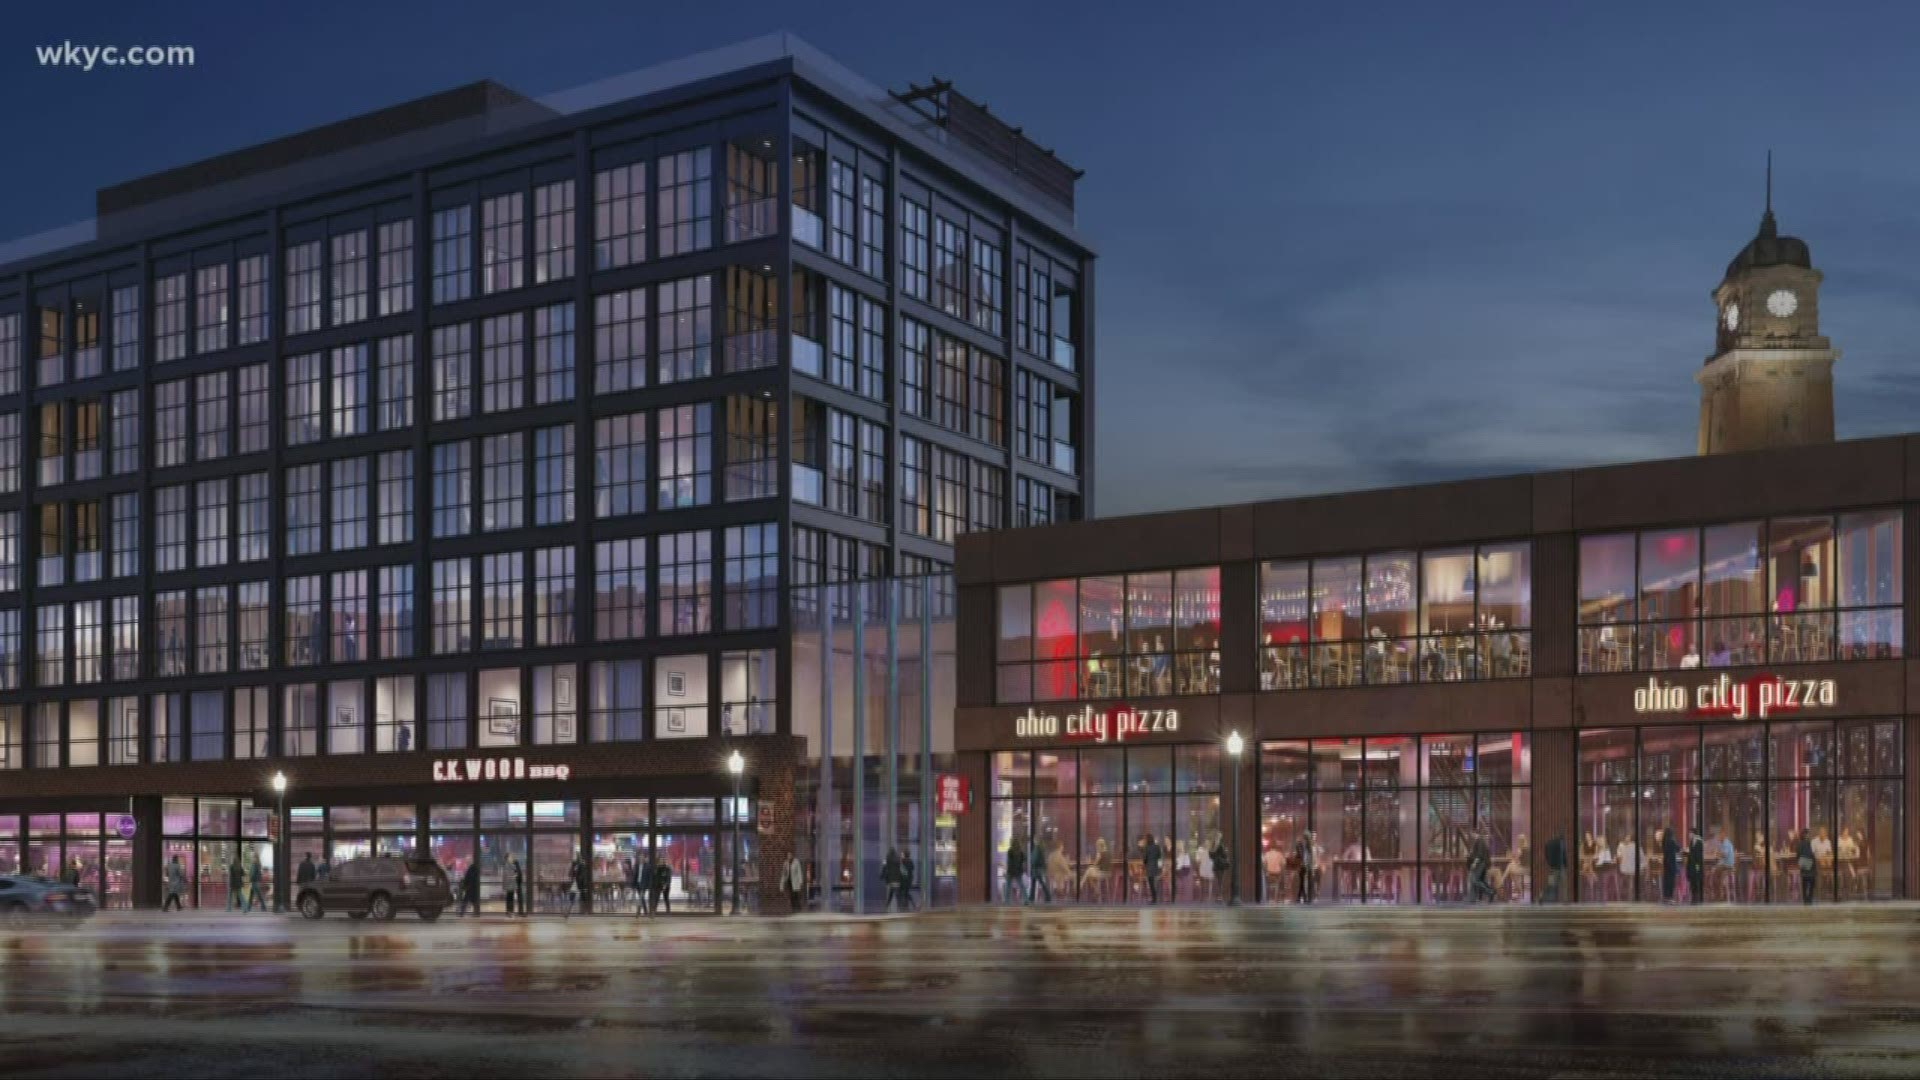 TSB Capital Advisors Arranges Financing for Innovative New 298-Unit Mixed-Use Development in Cleveland's Ohio City